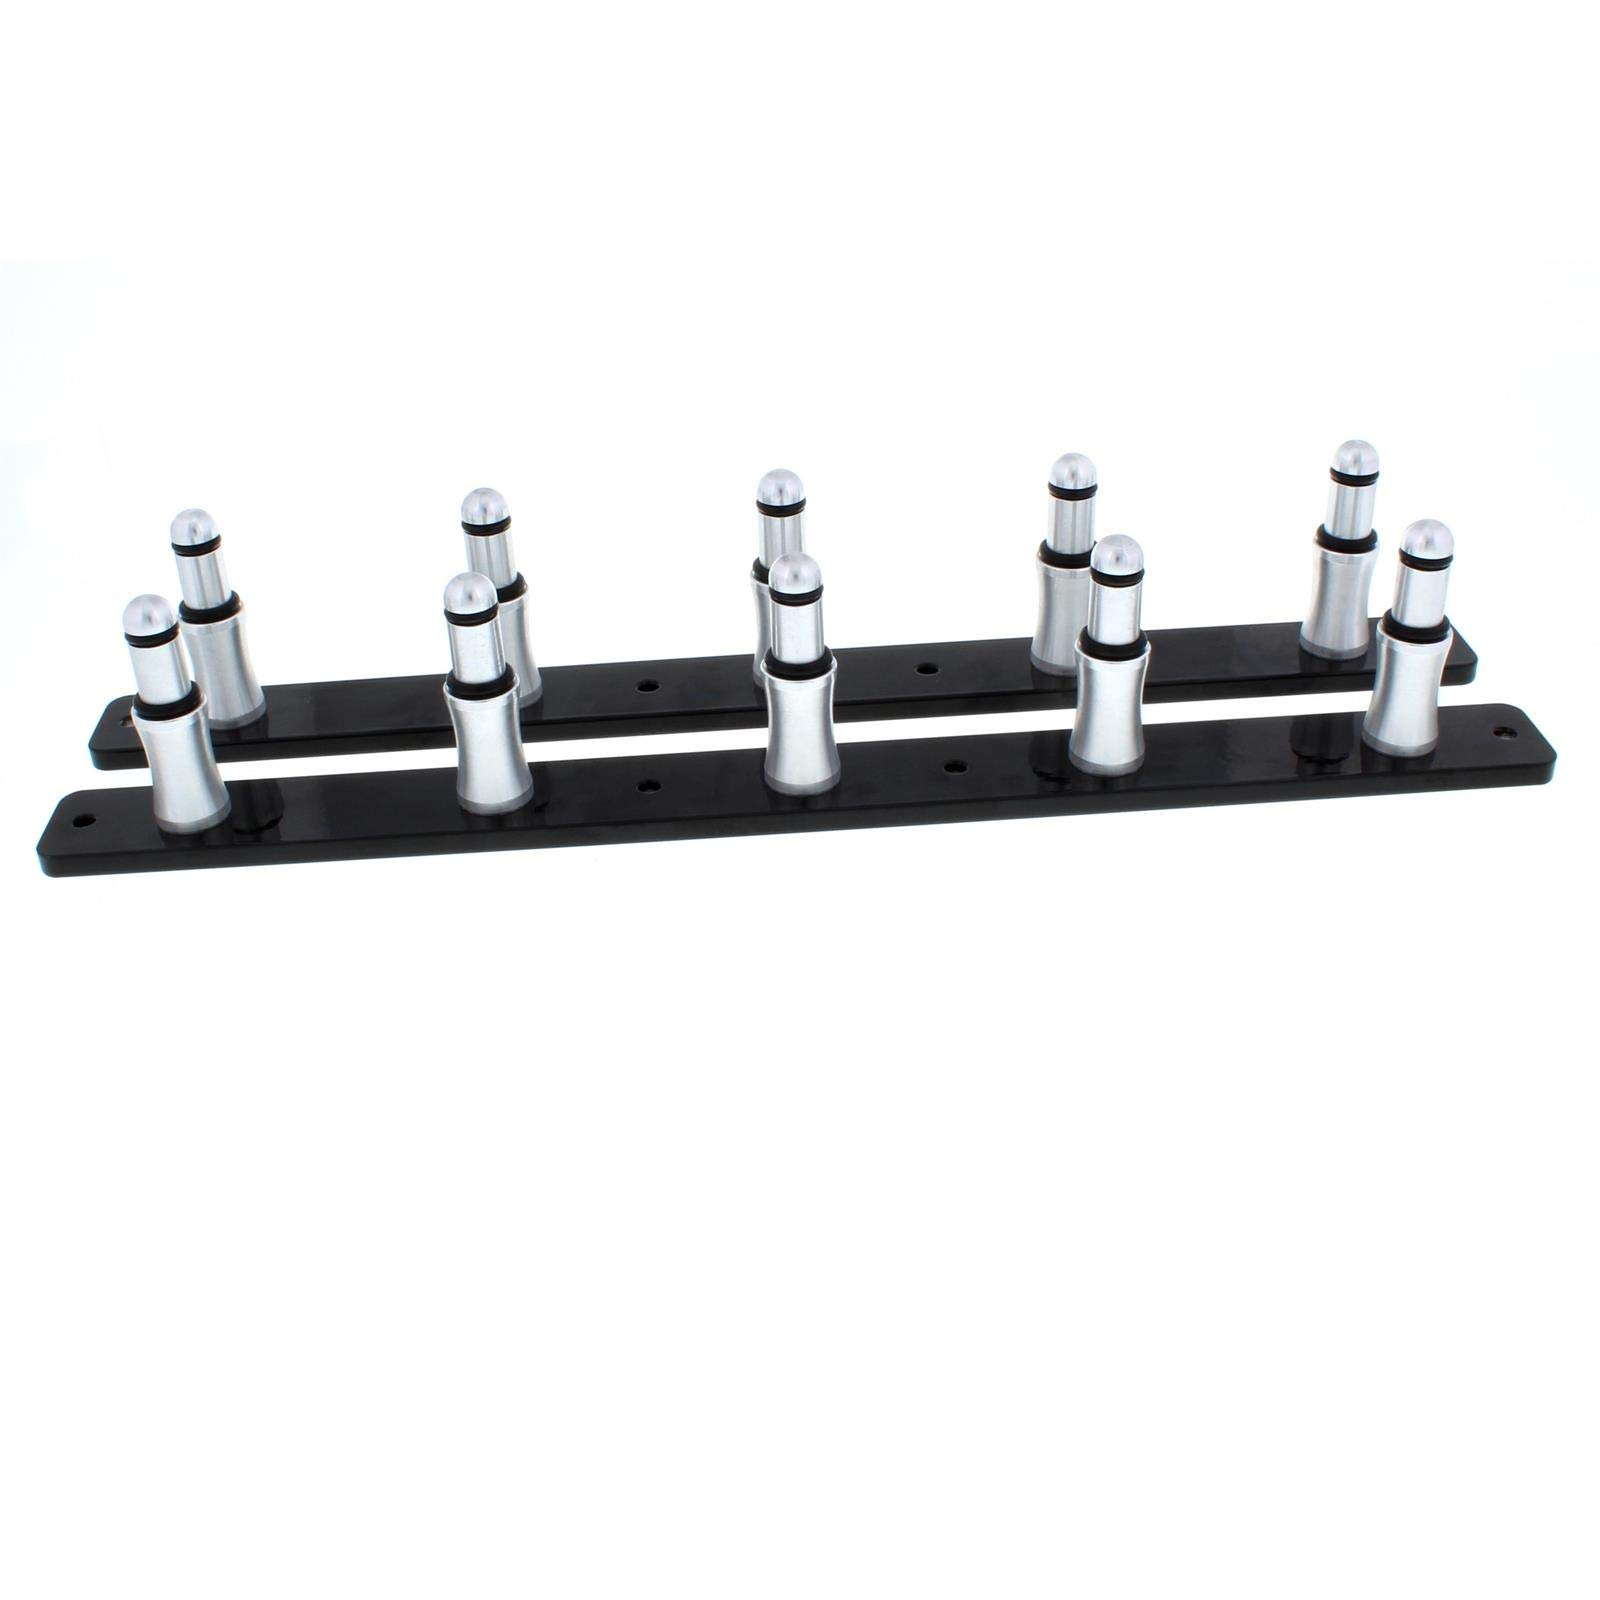 Five-Shock Trailer Mount Rack-1/2 Inch Shock End Application